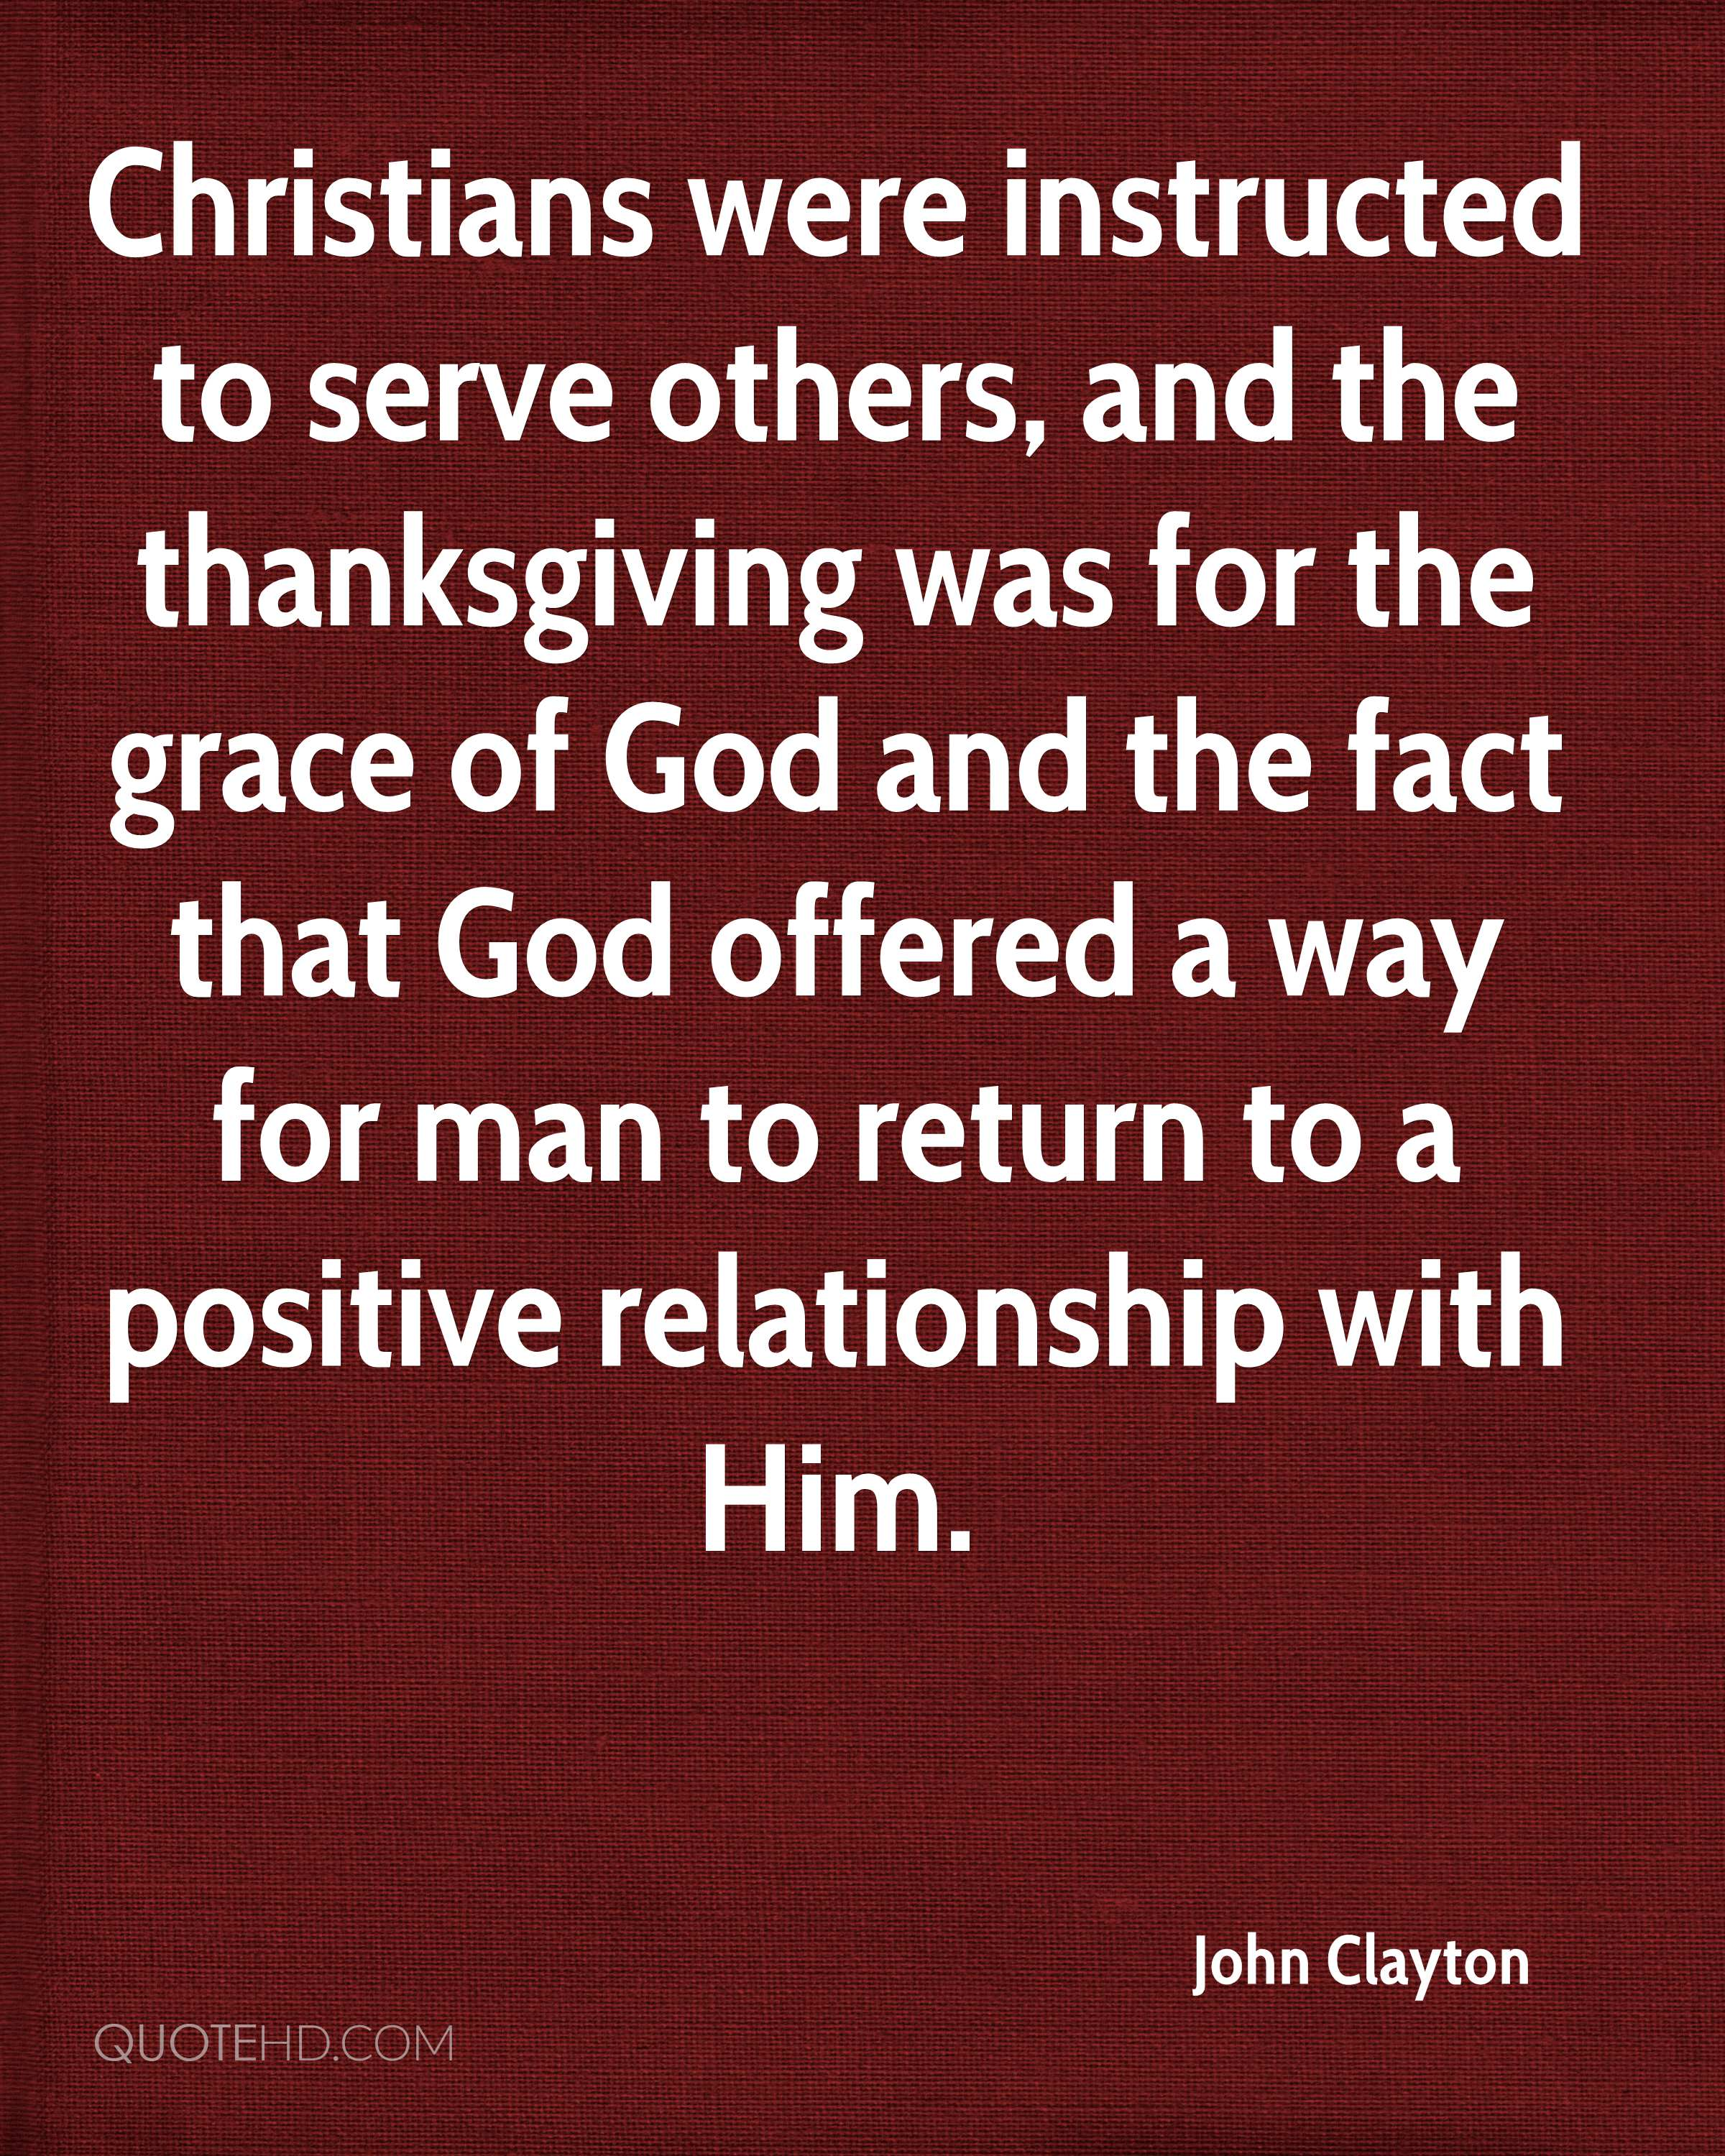 Christians were instructed to serve others, and the thanksgiving was for the grace of God and the fact that God offered a way for man to return to a positive relationship with Him.